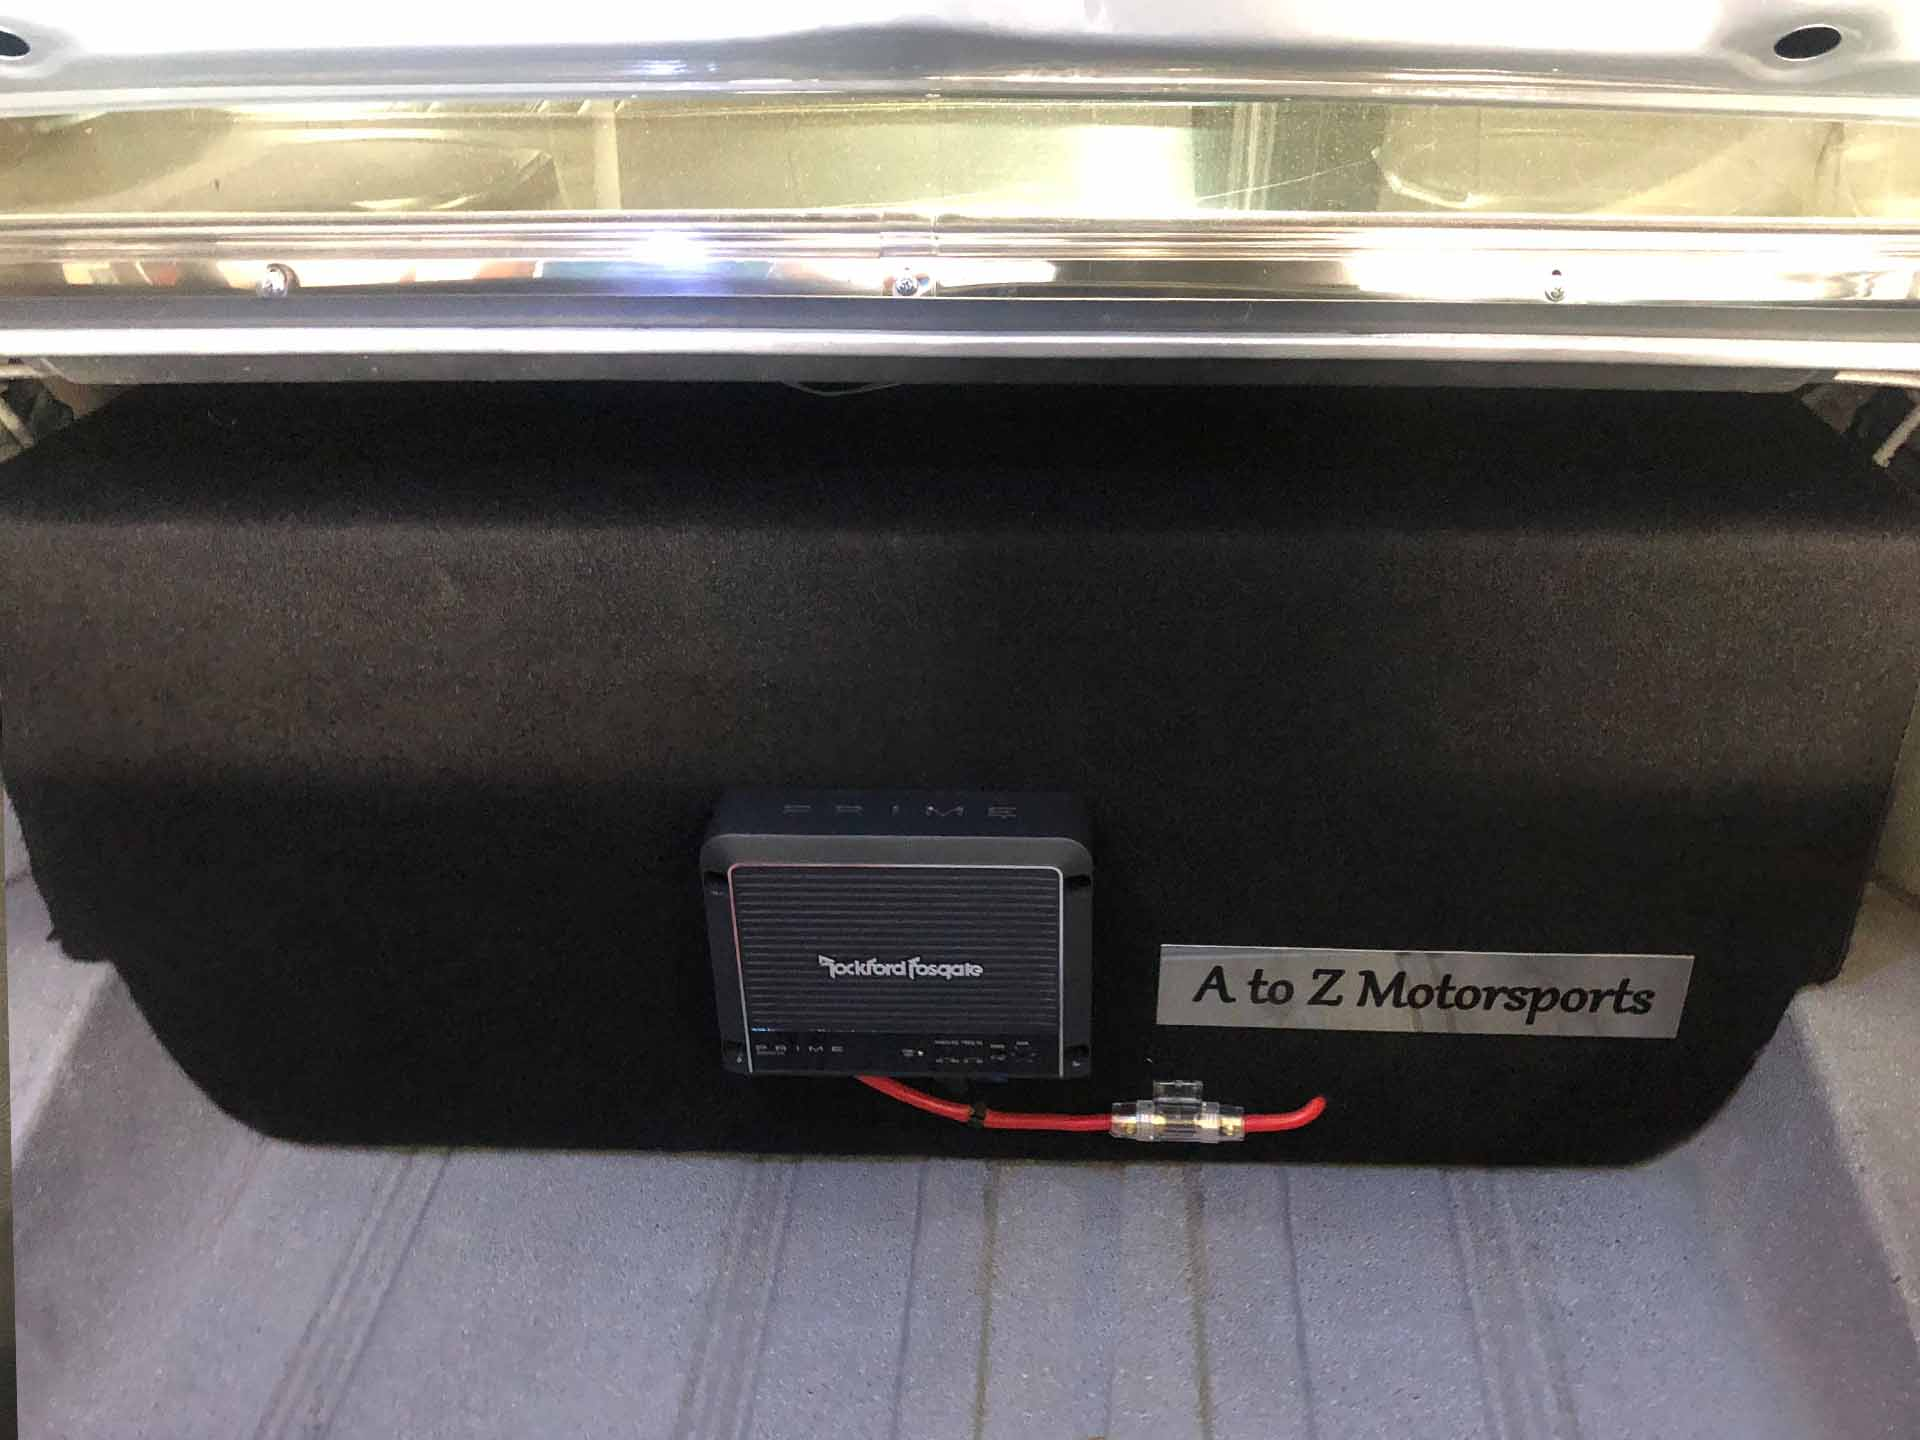 Chevy SS stereo box installed